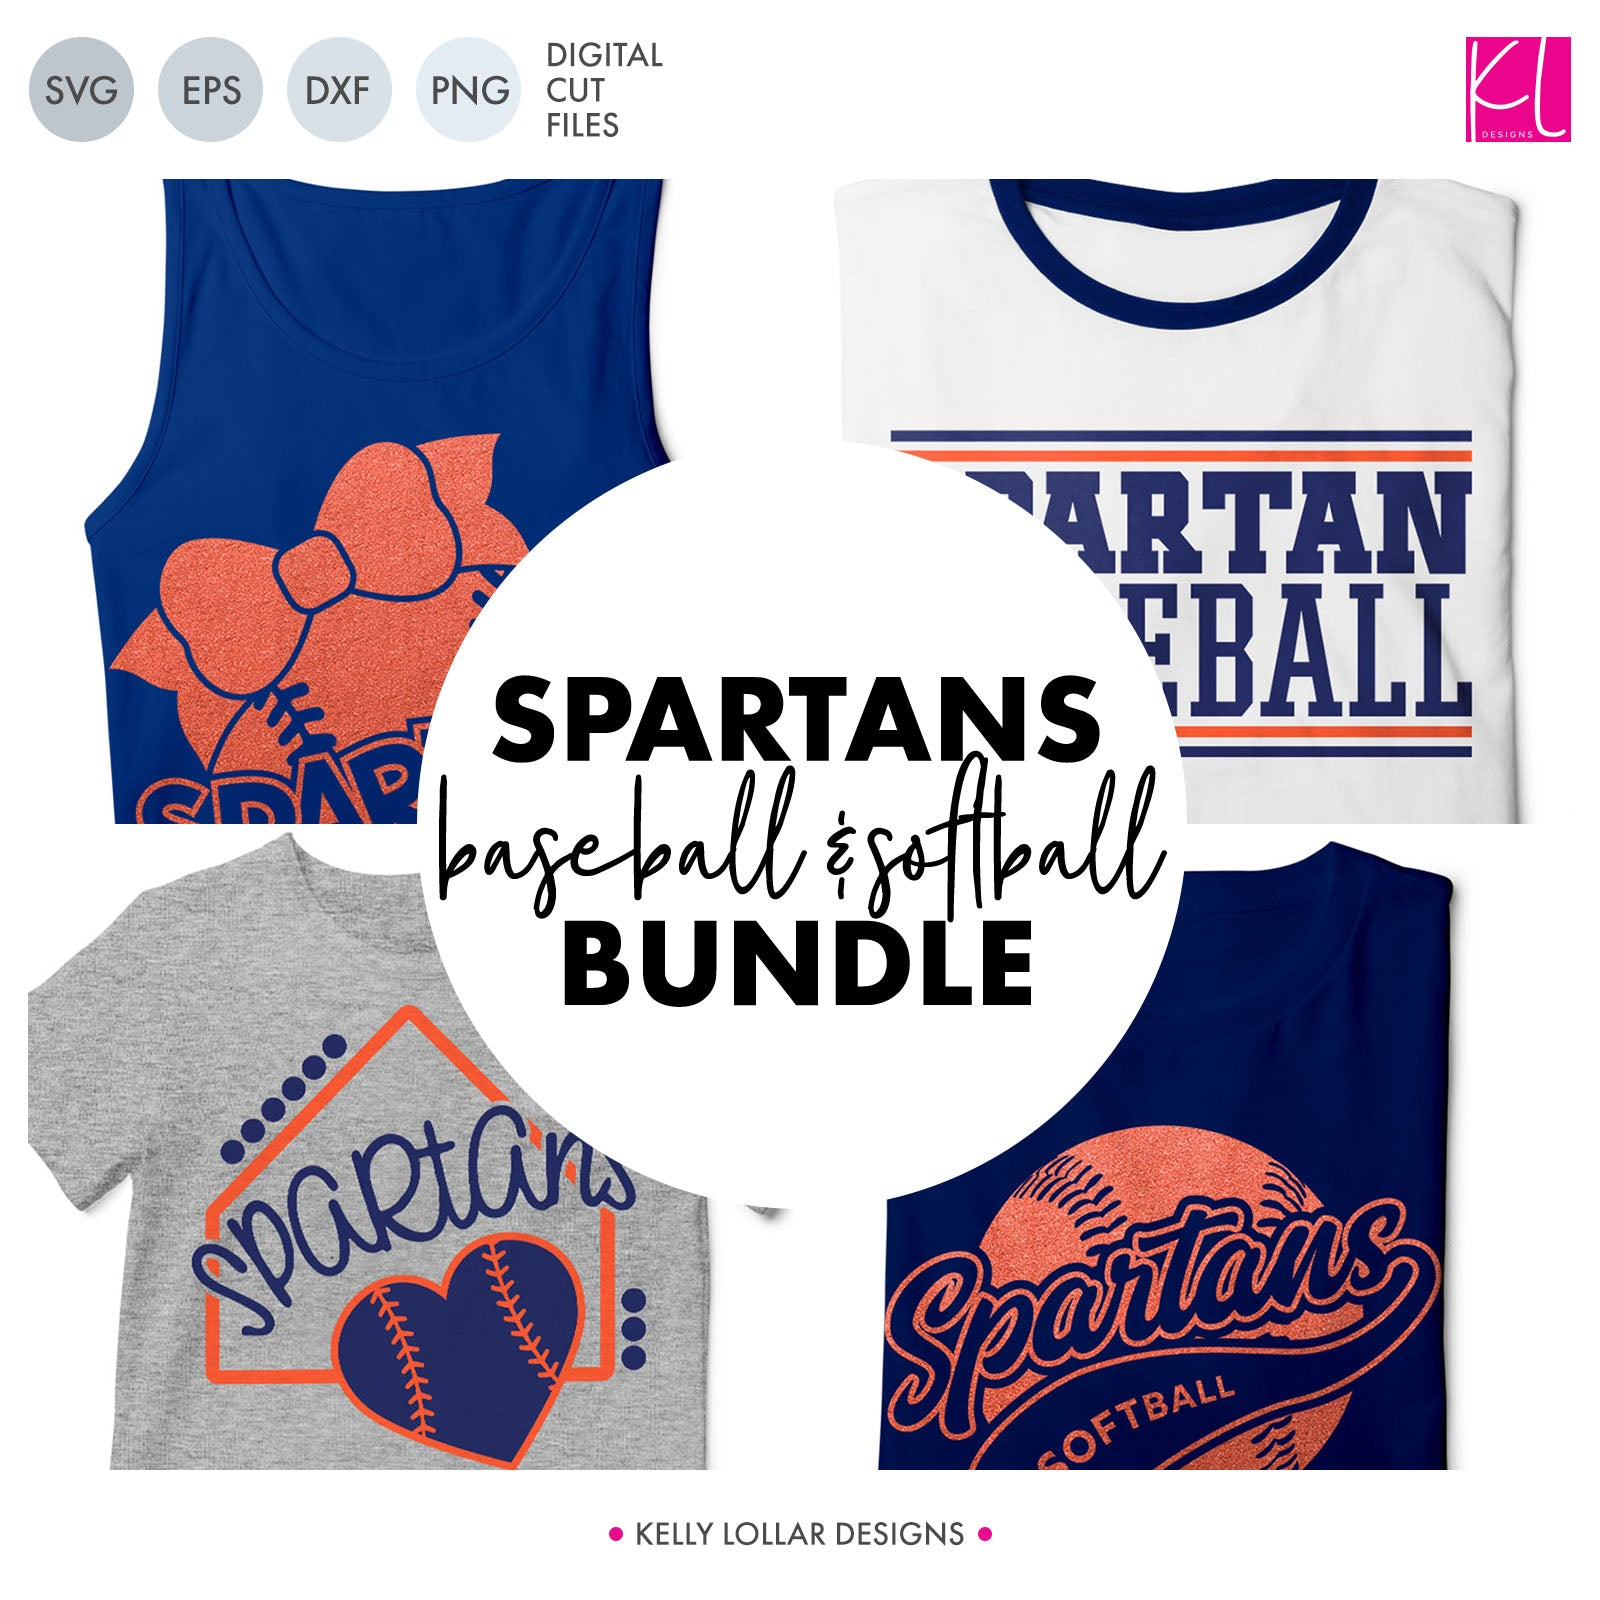 Spartans Baseball & Softball Bundle | SVG DXF EPS PNG Cut Files It's baseball and softball season, so Spartan crafter know what that means ... new spirit shirts! This fifteen-piece bundle includes a little something for everyone - from girly and cute